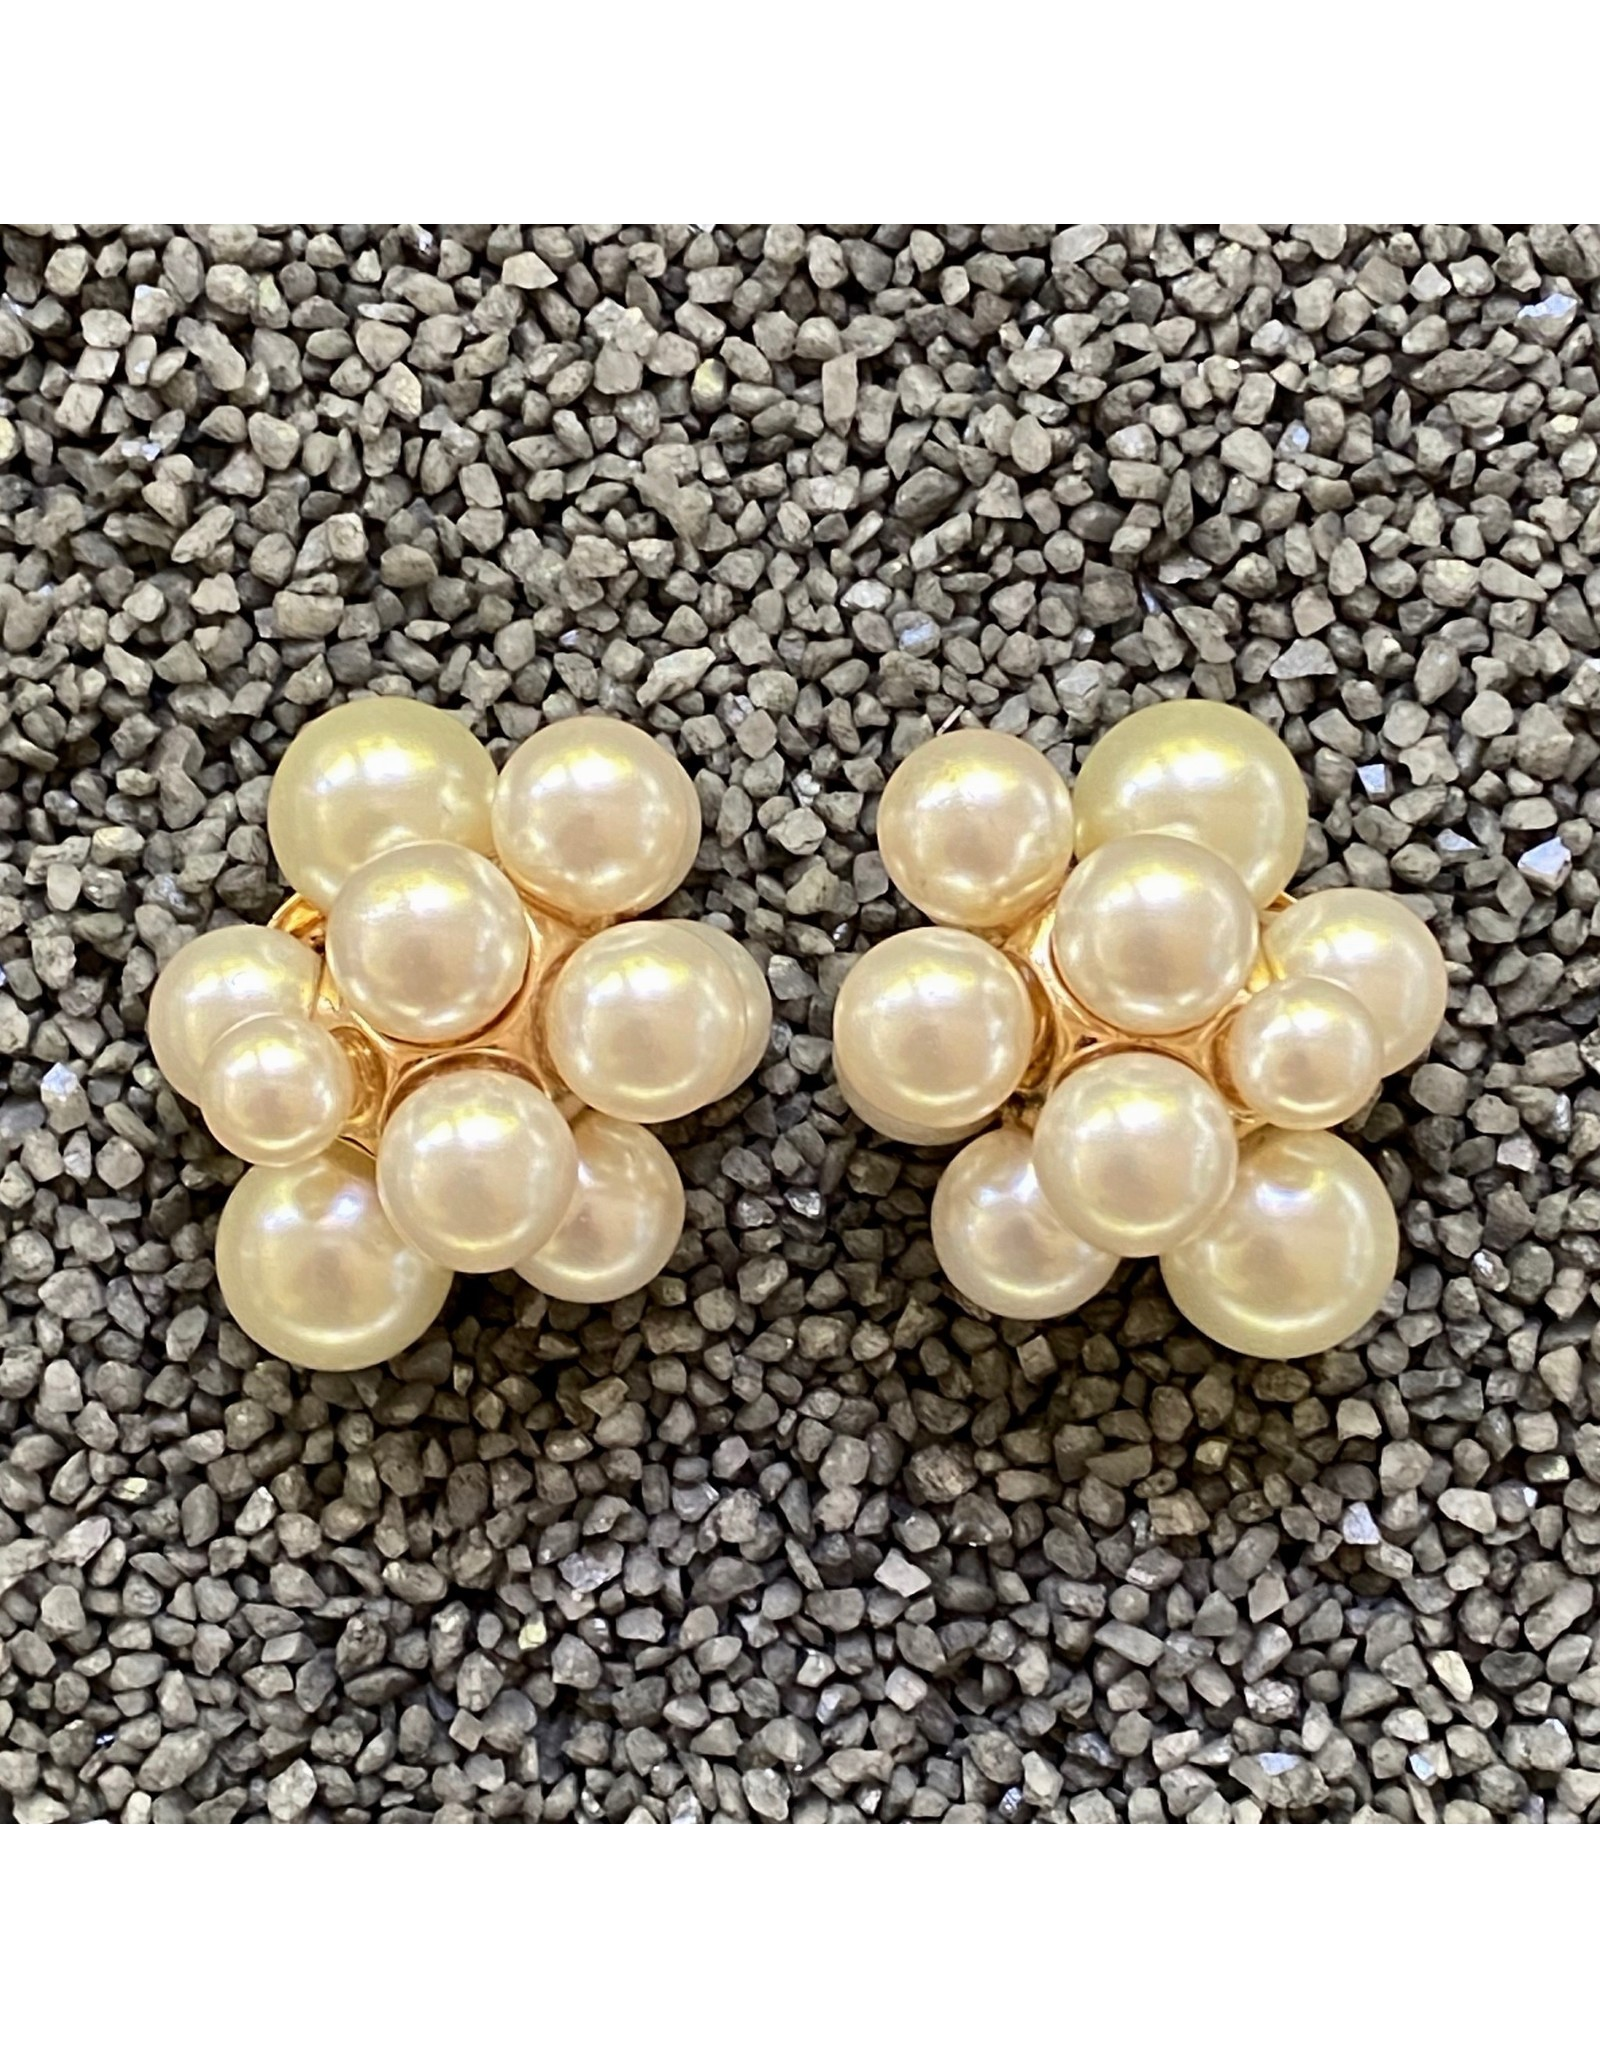 VC Italy rep/rje1793/pearl/cluster (01+75TUTTE)